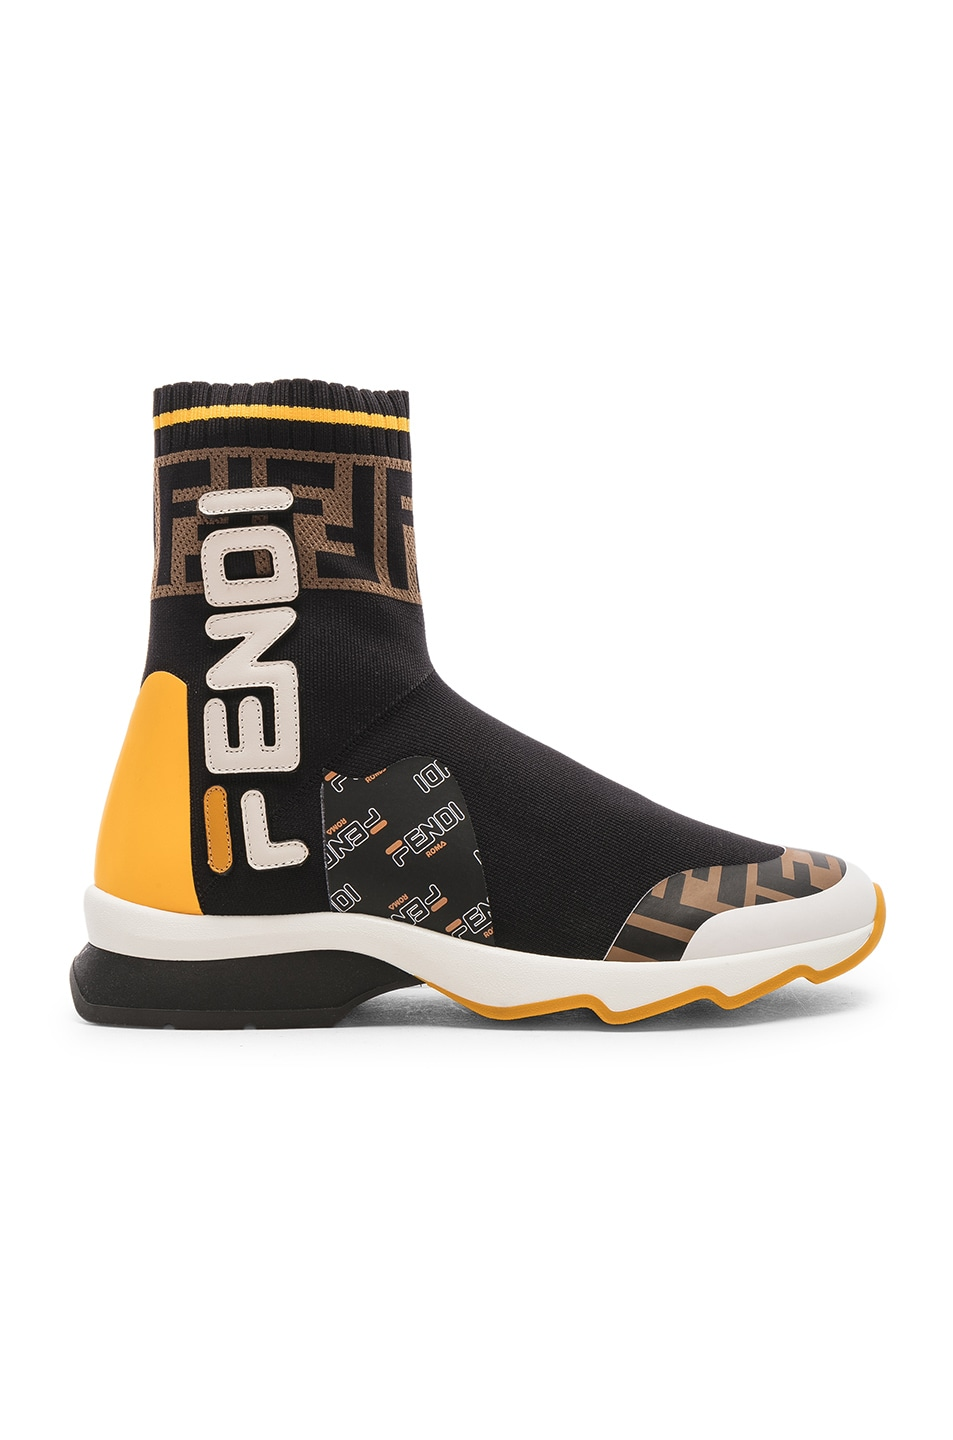 Image 1 of Fendi x FILA Sock Sneakers in Black & Multicolor